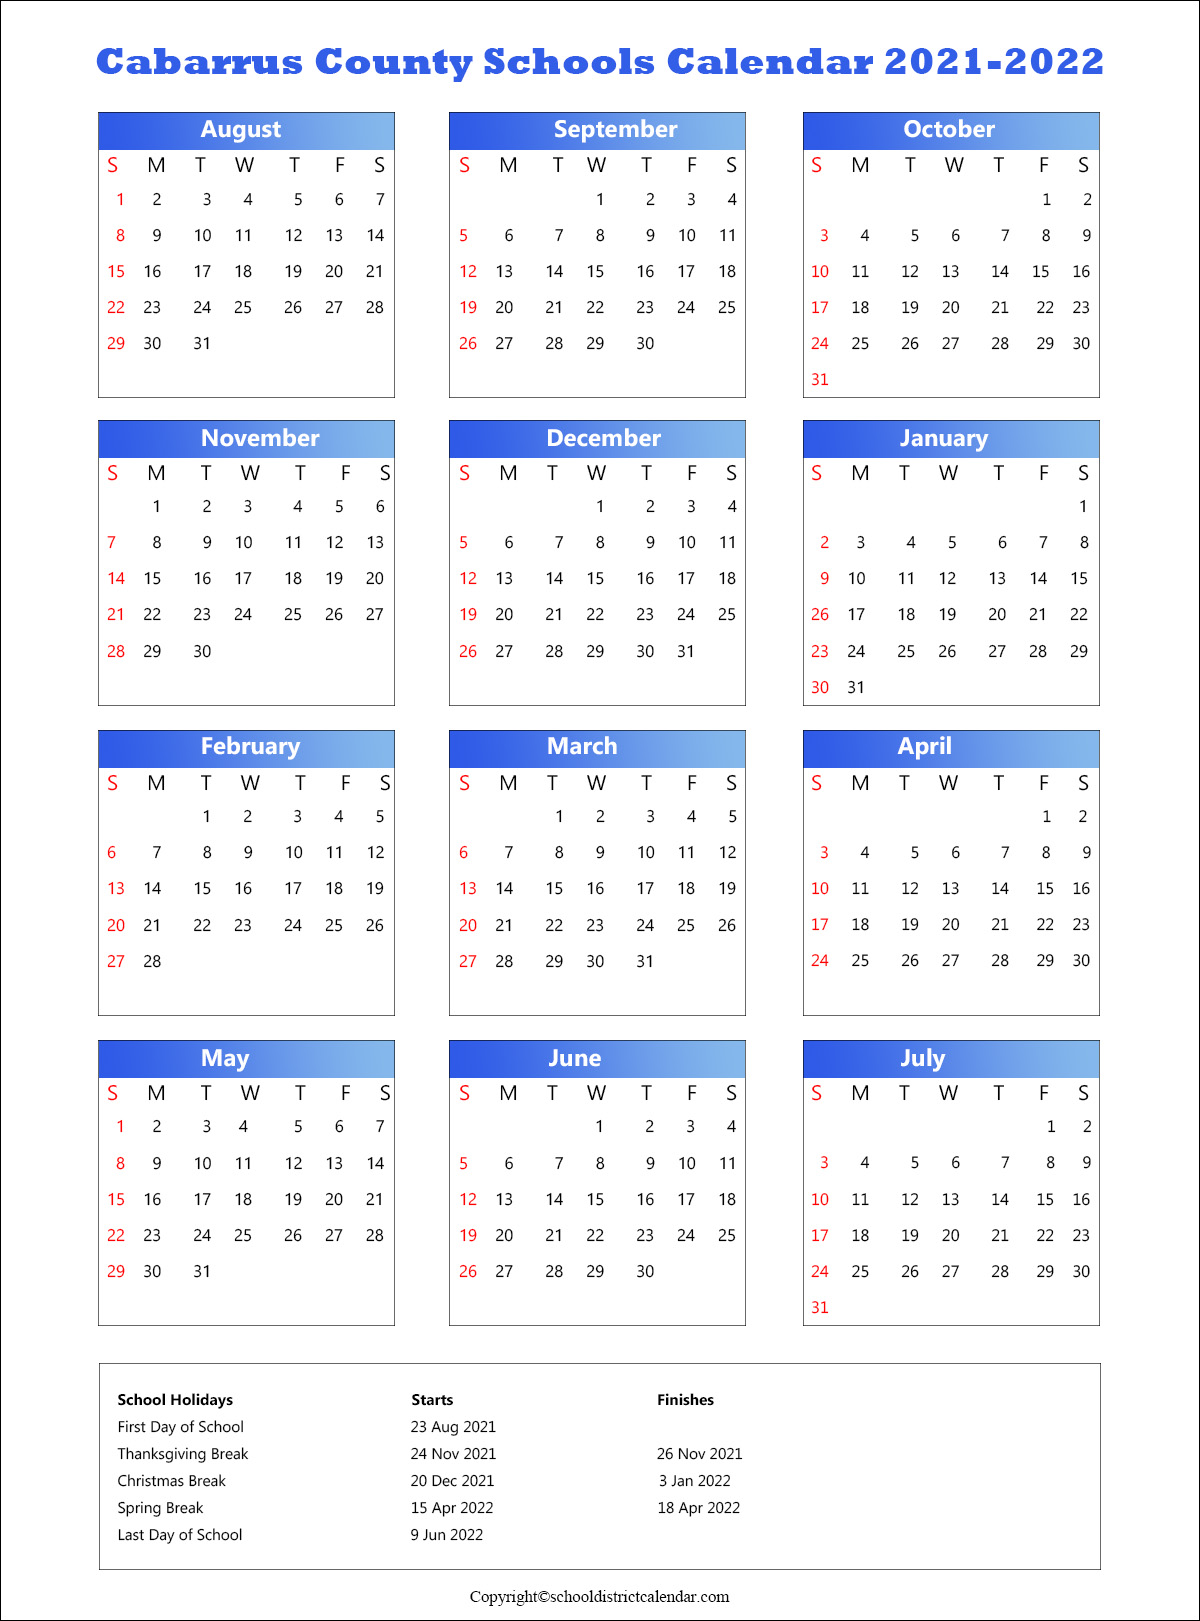 Cabarrus County Schools District Calendar 2021.1